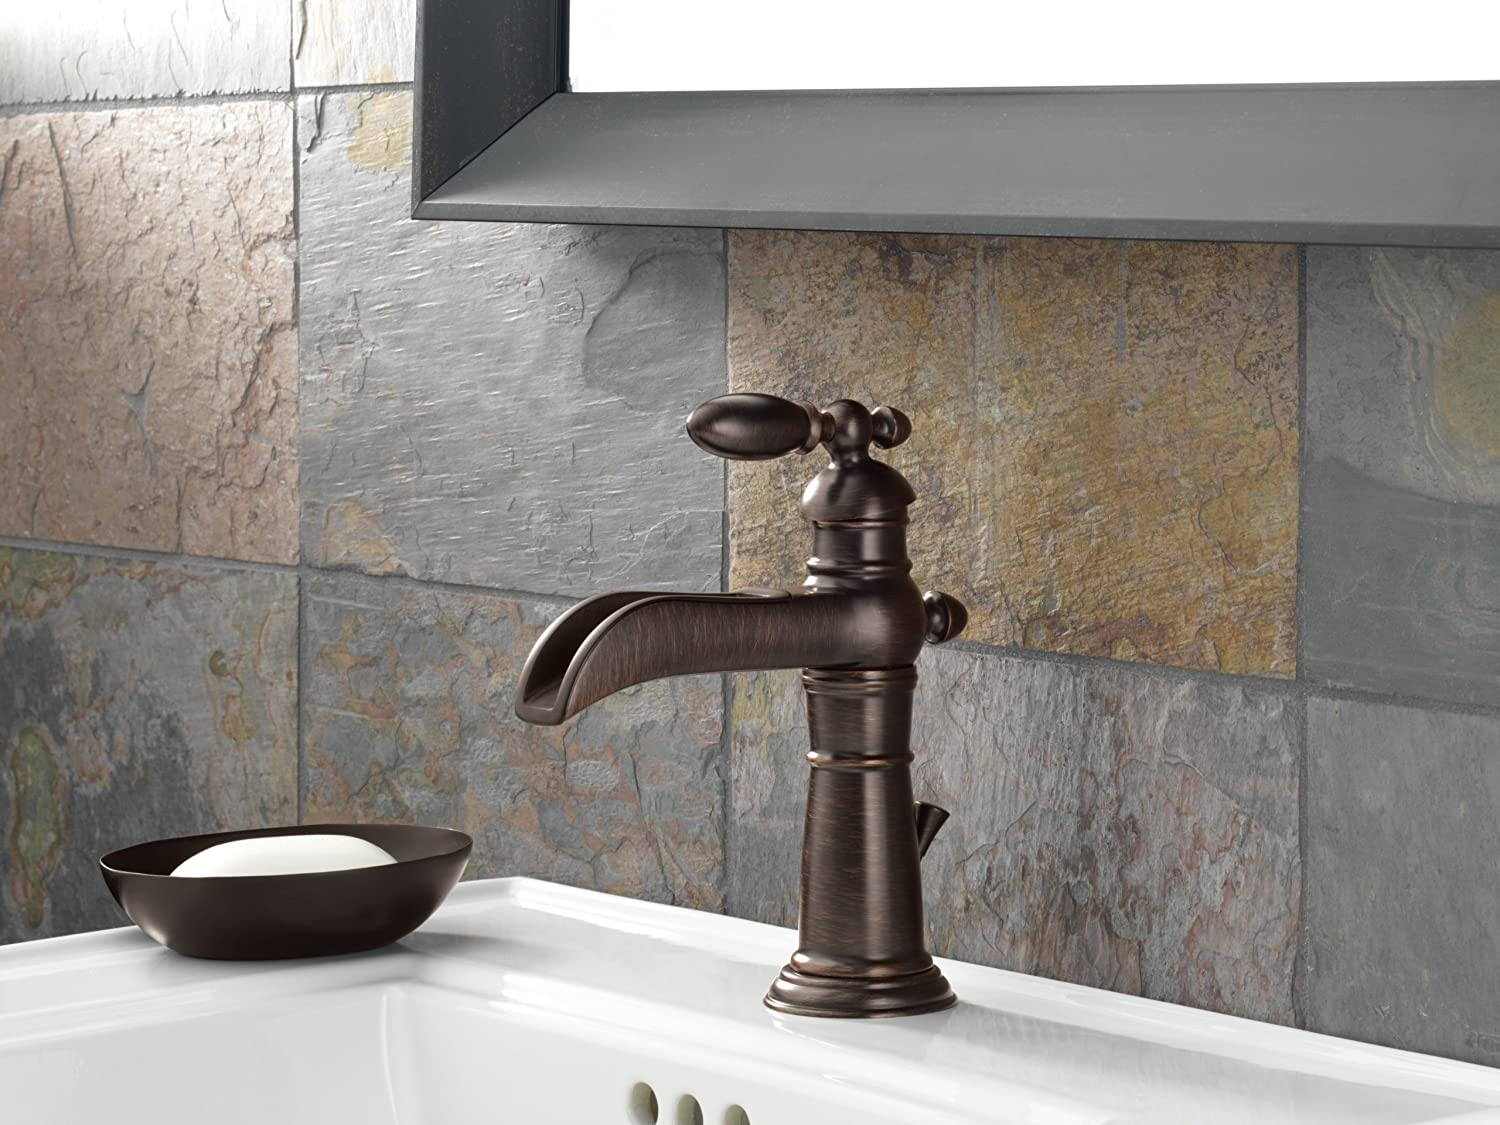 hole finish oil one bathroom faucets faucet antique rubbed bronze waterfall installation sink